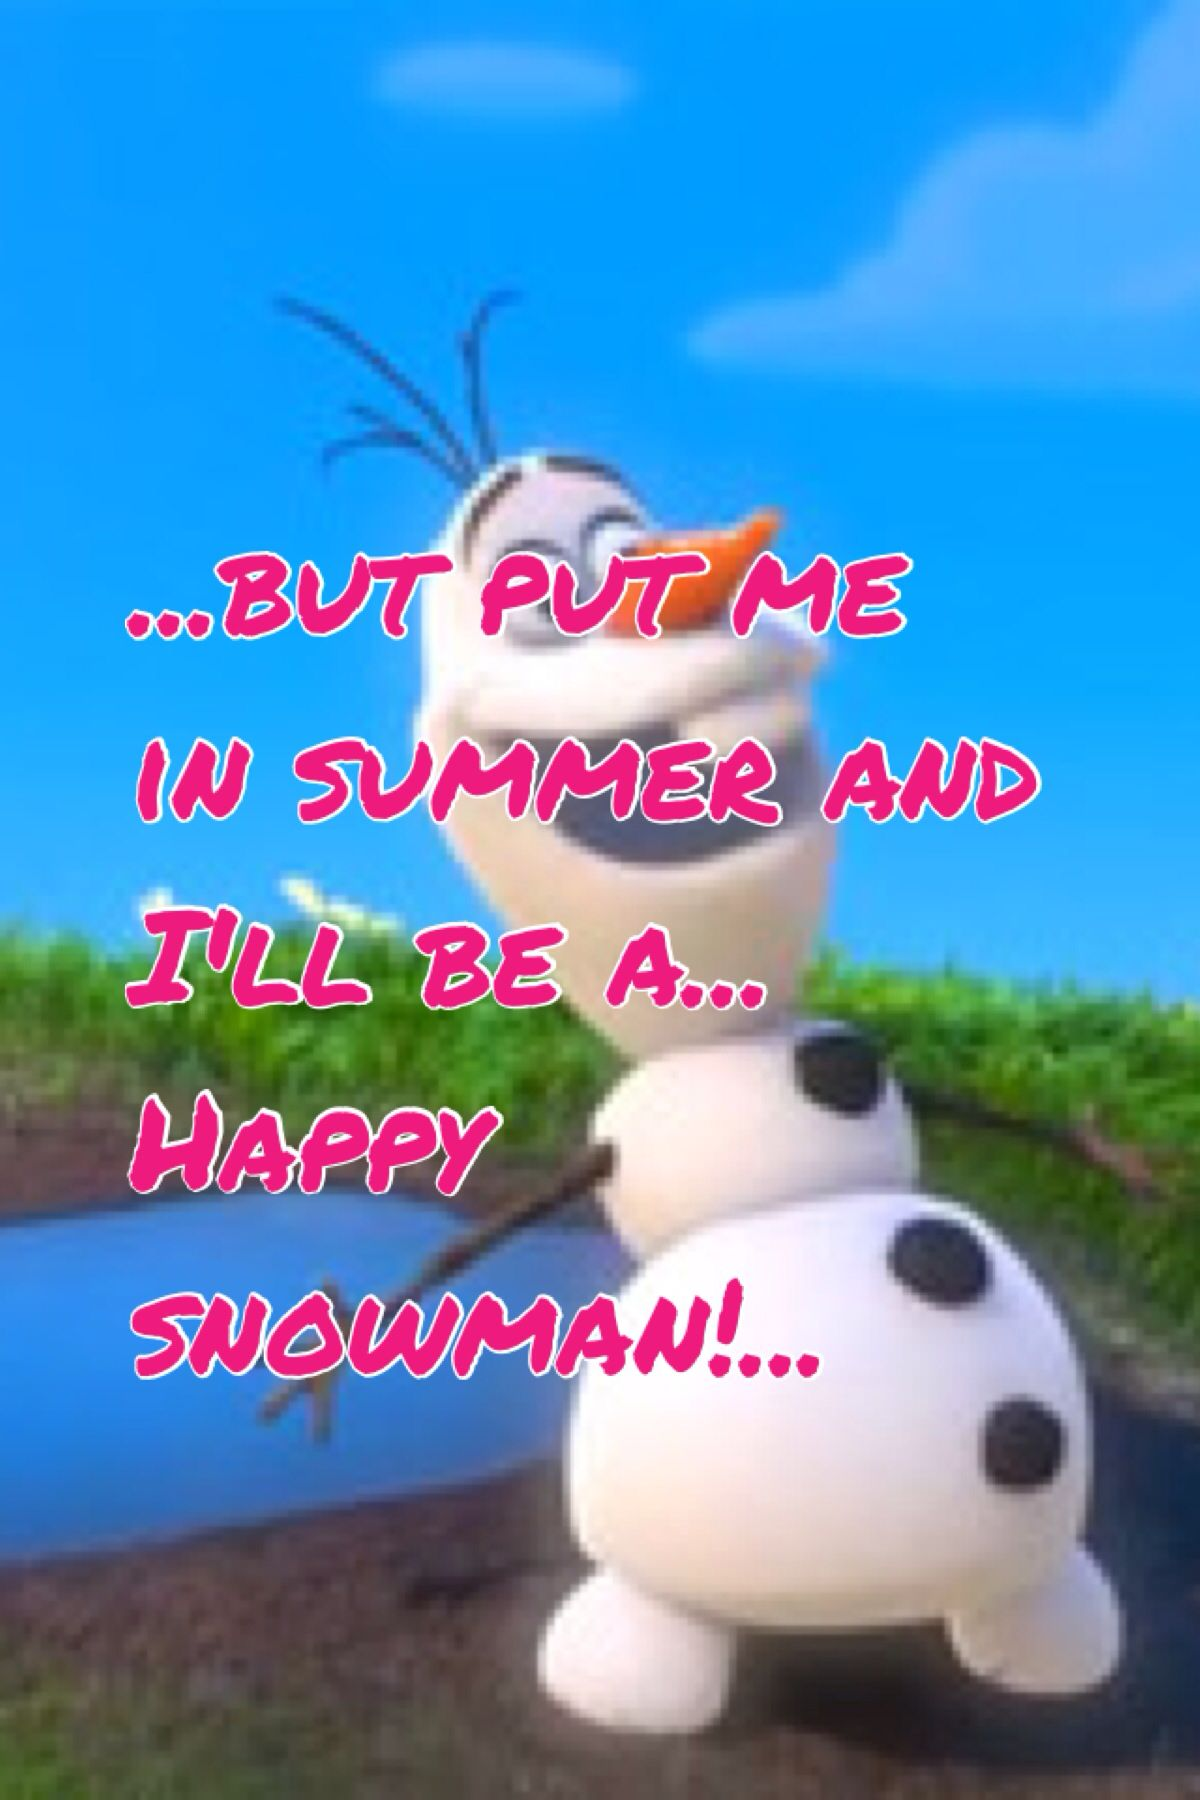 It was supposed to be puddle but that's what makes Olaf cute!